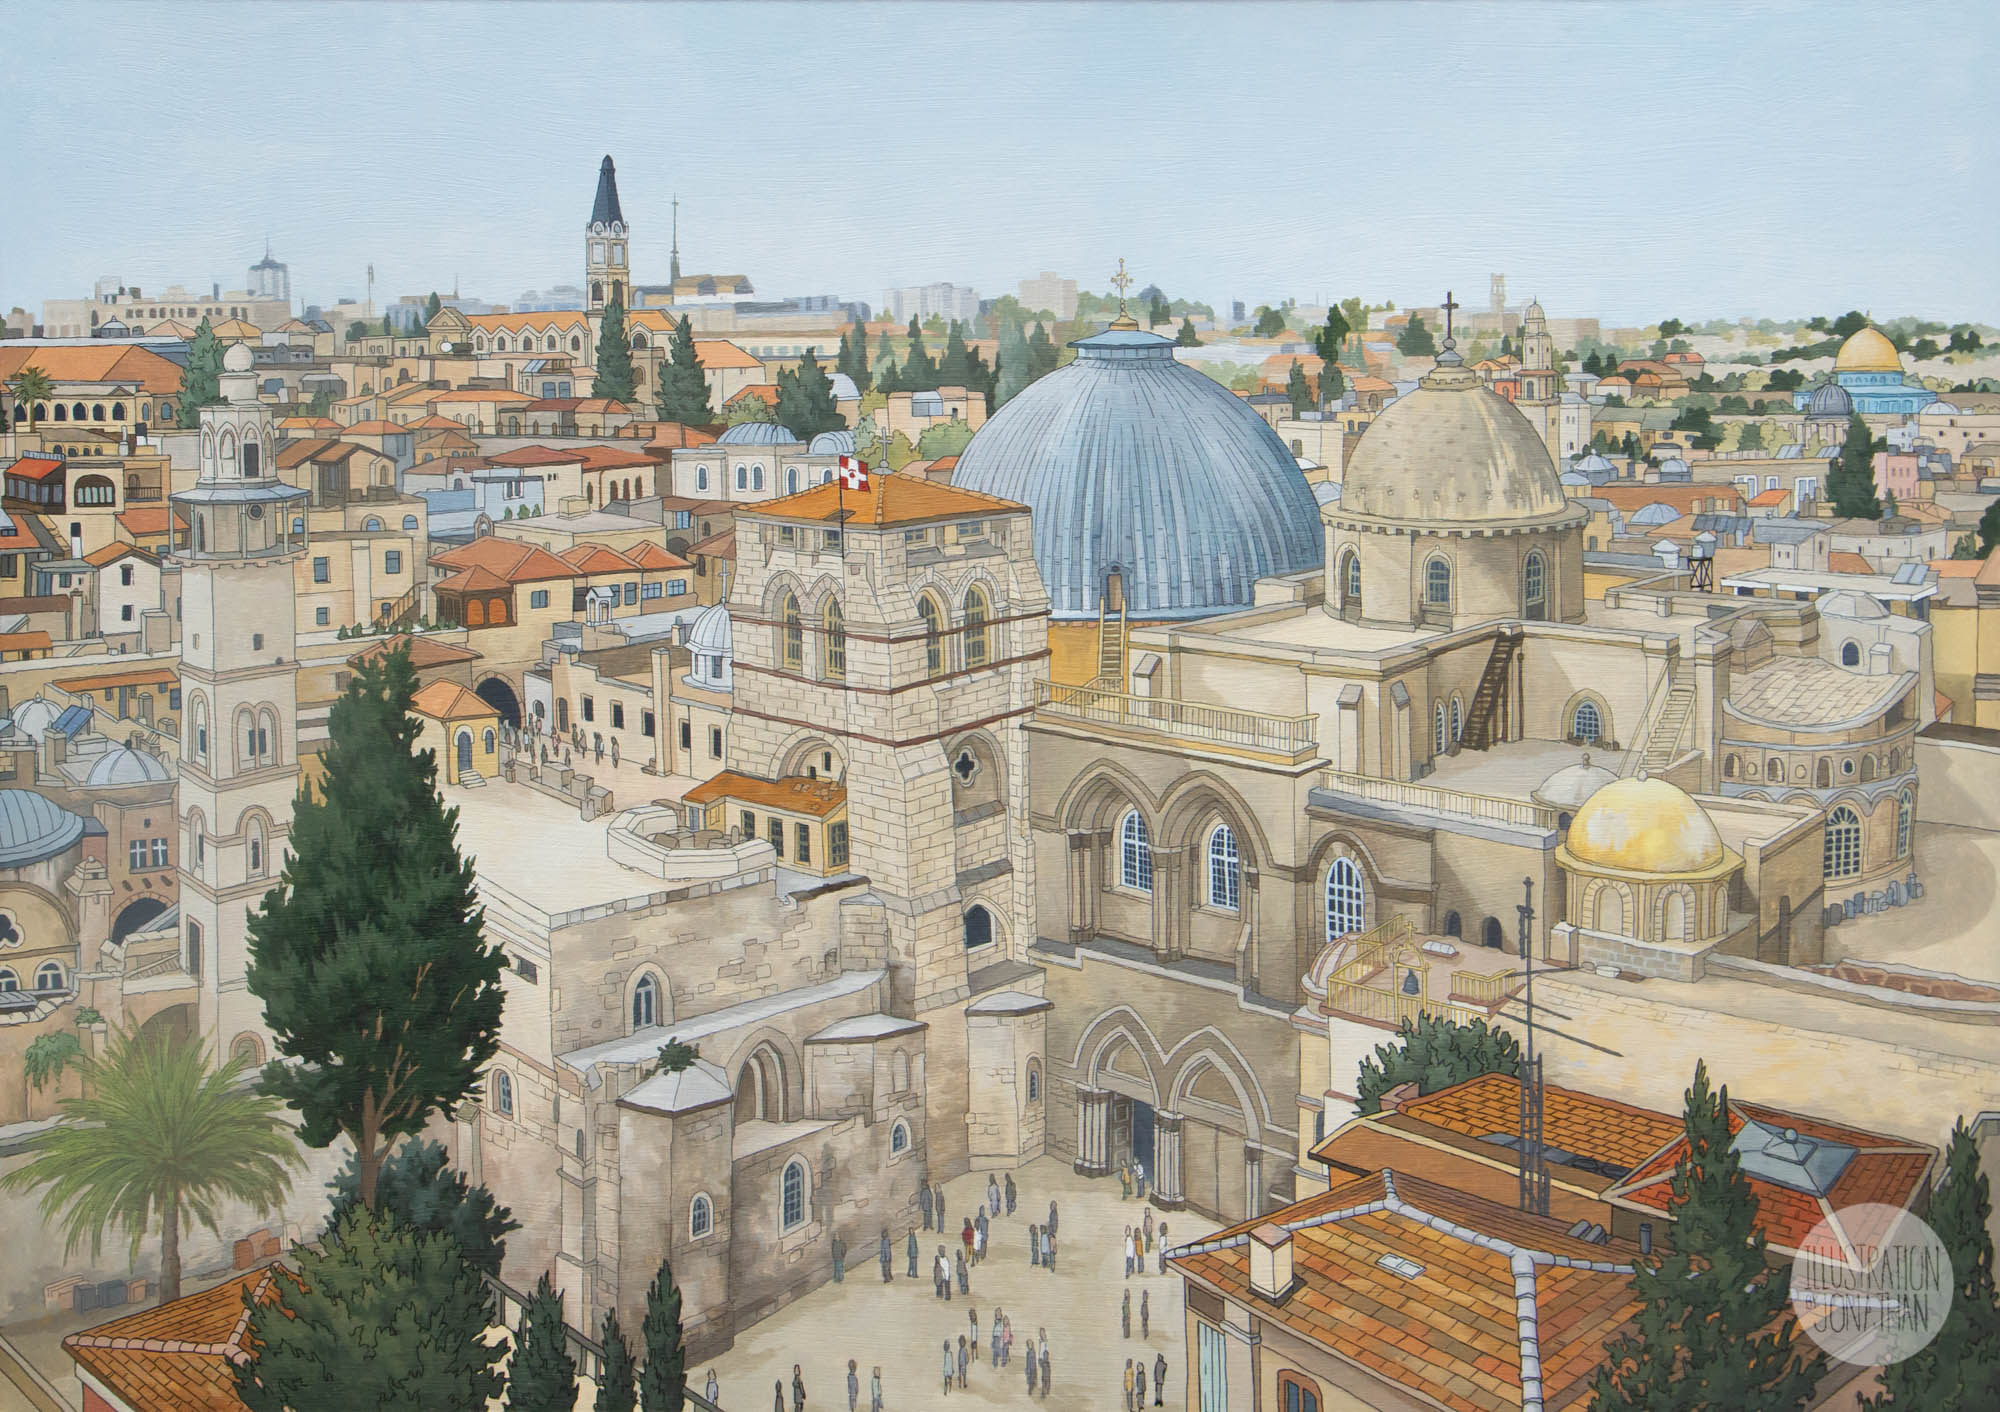 Church of the Holy Sepulchre Jerusalem - Illustration by Jonathan Chapman